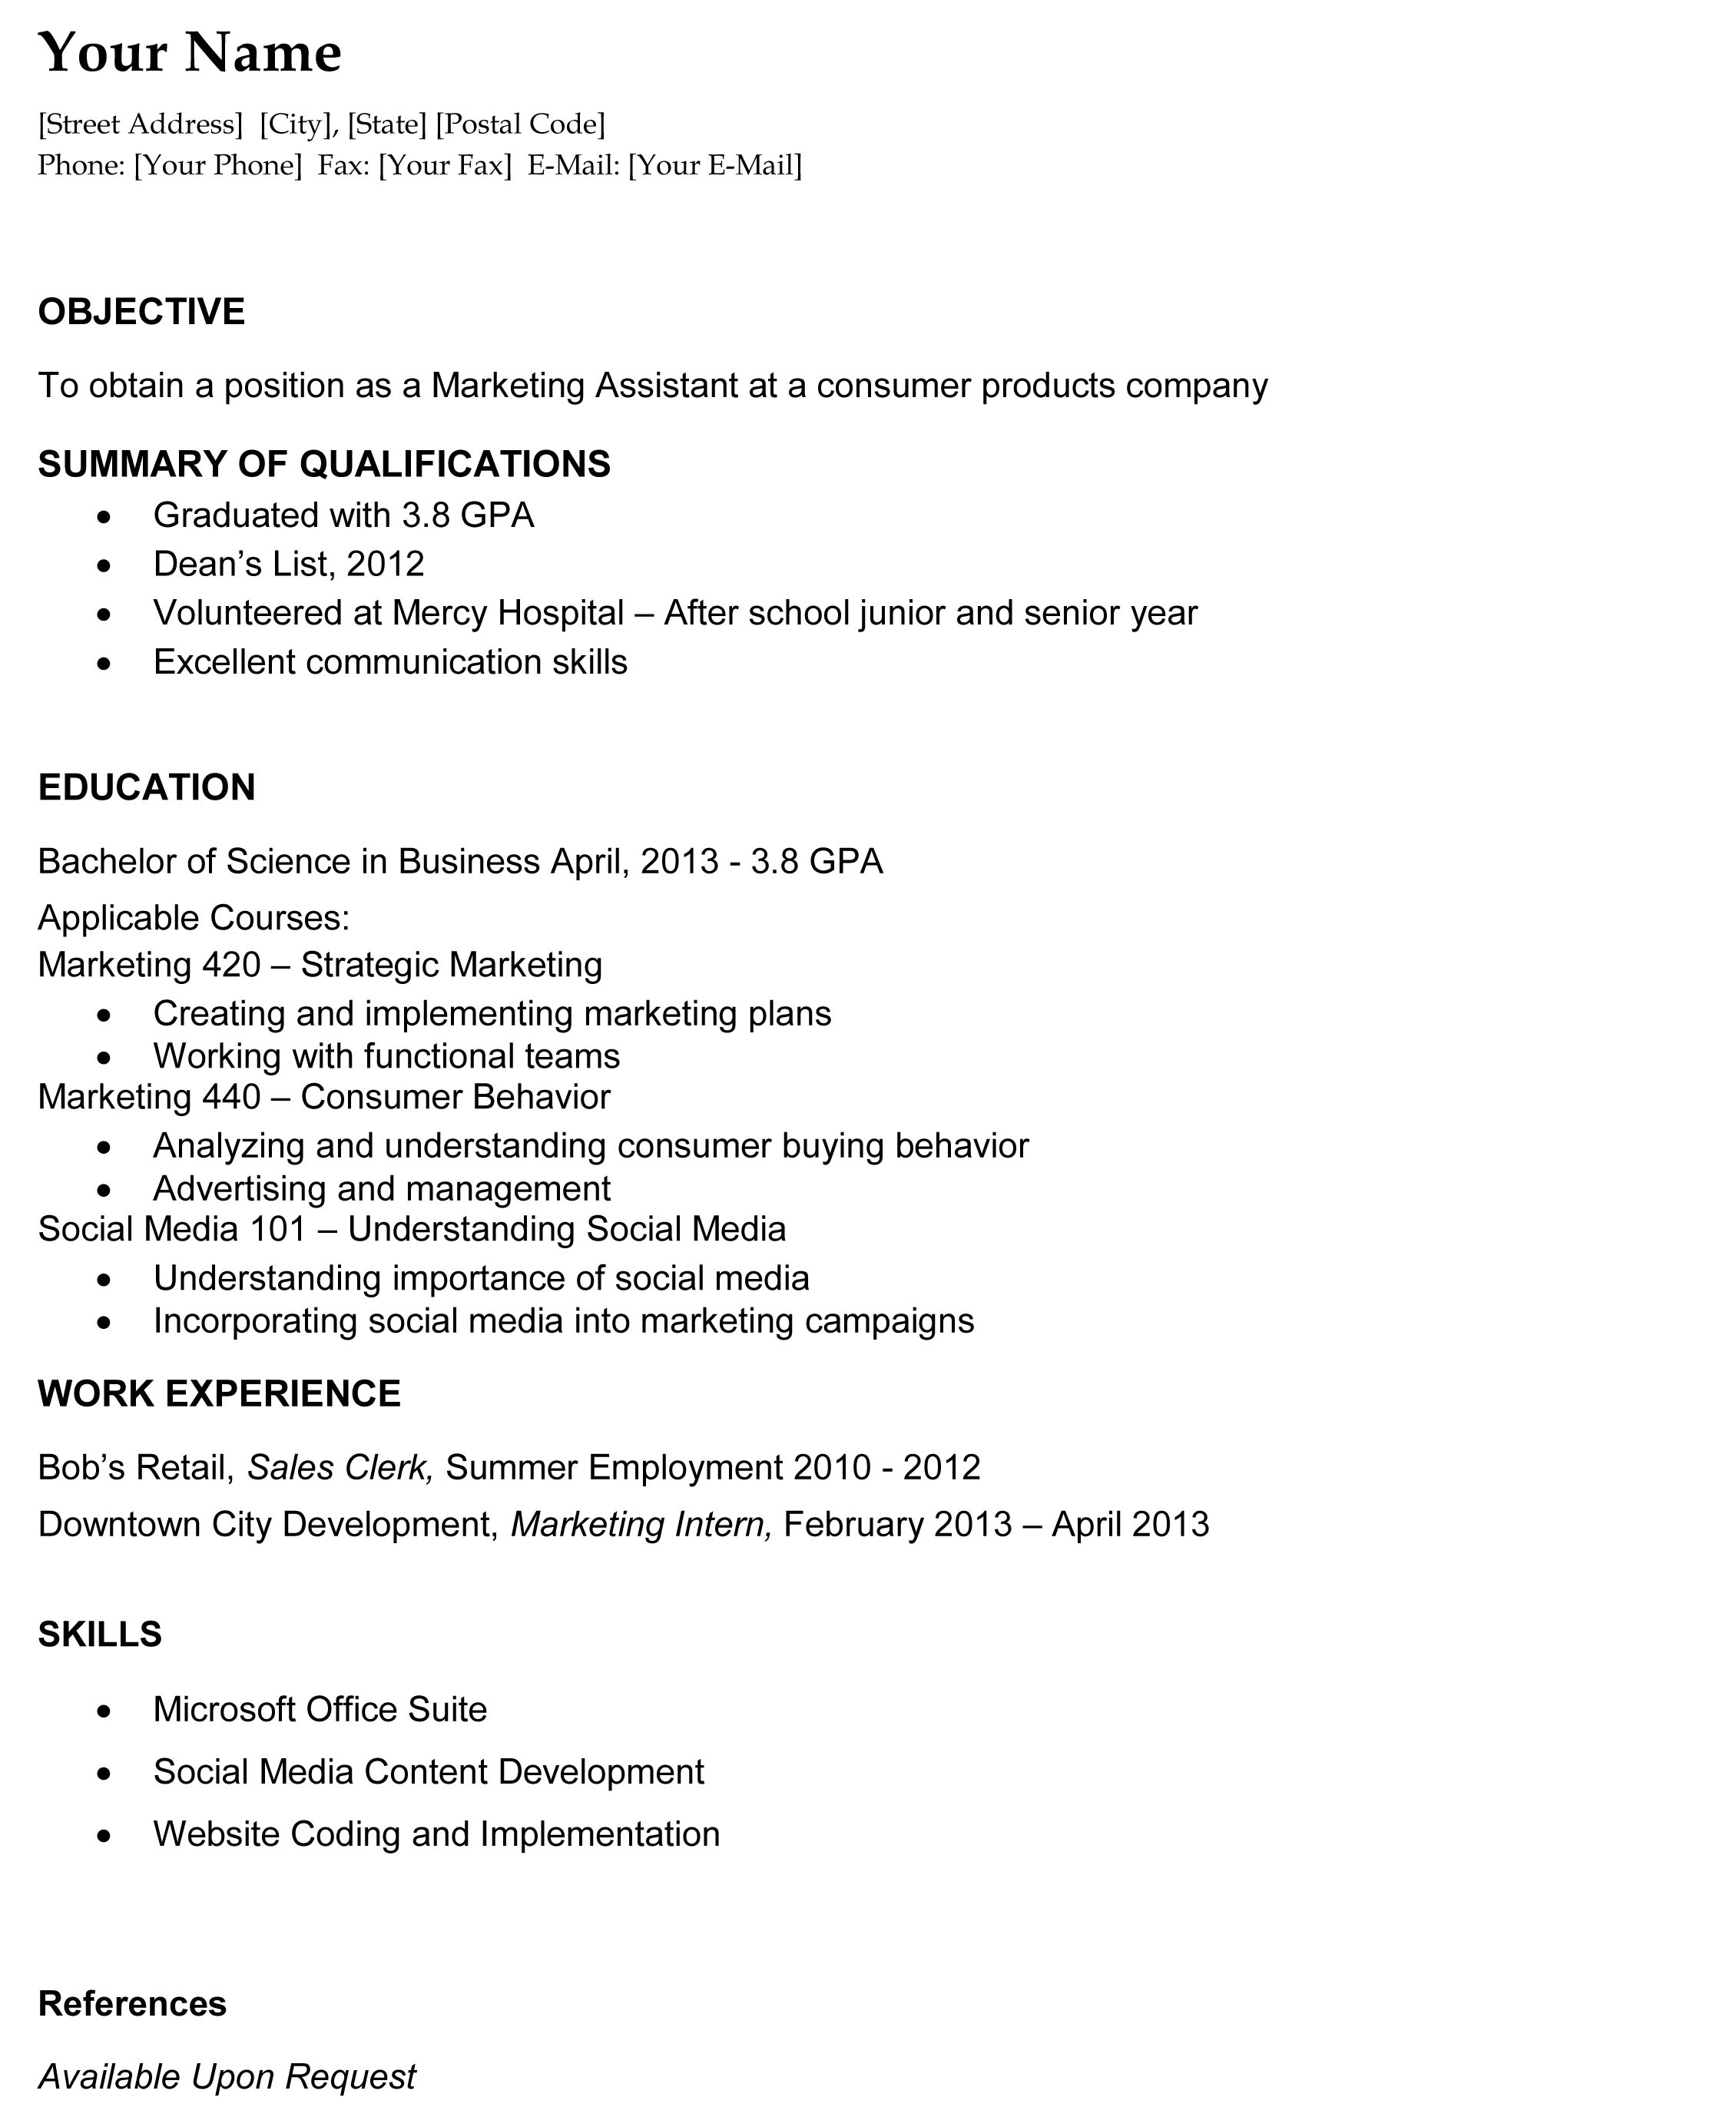 College Grad Resume Template – Objectives for College Resumes